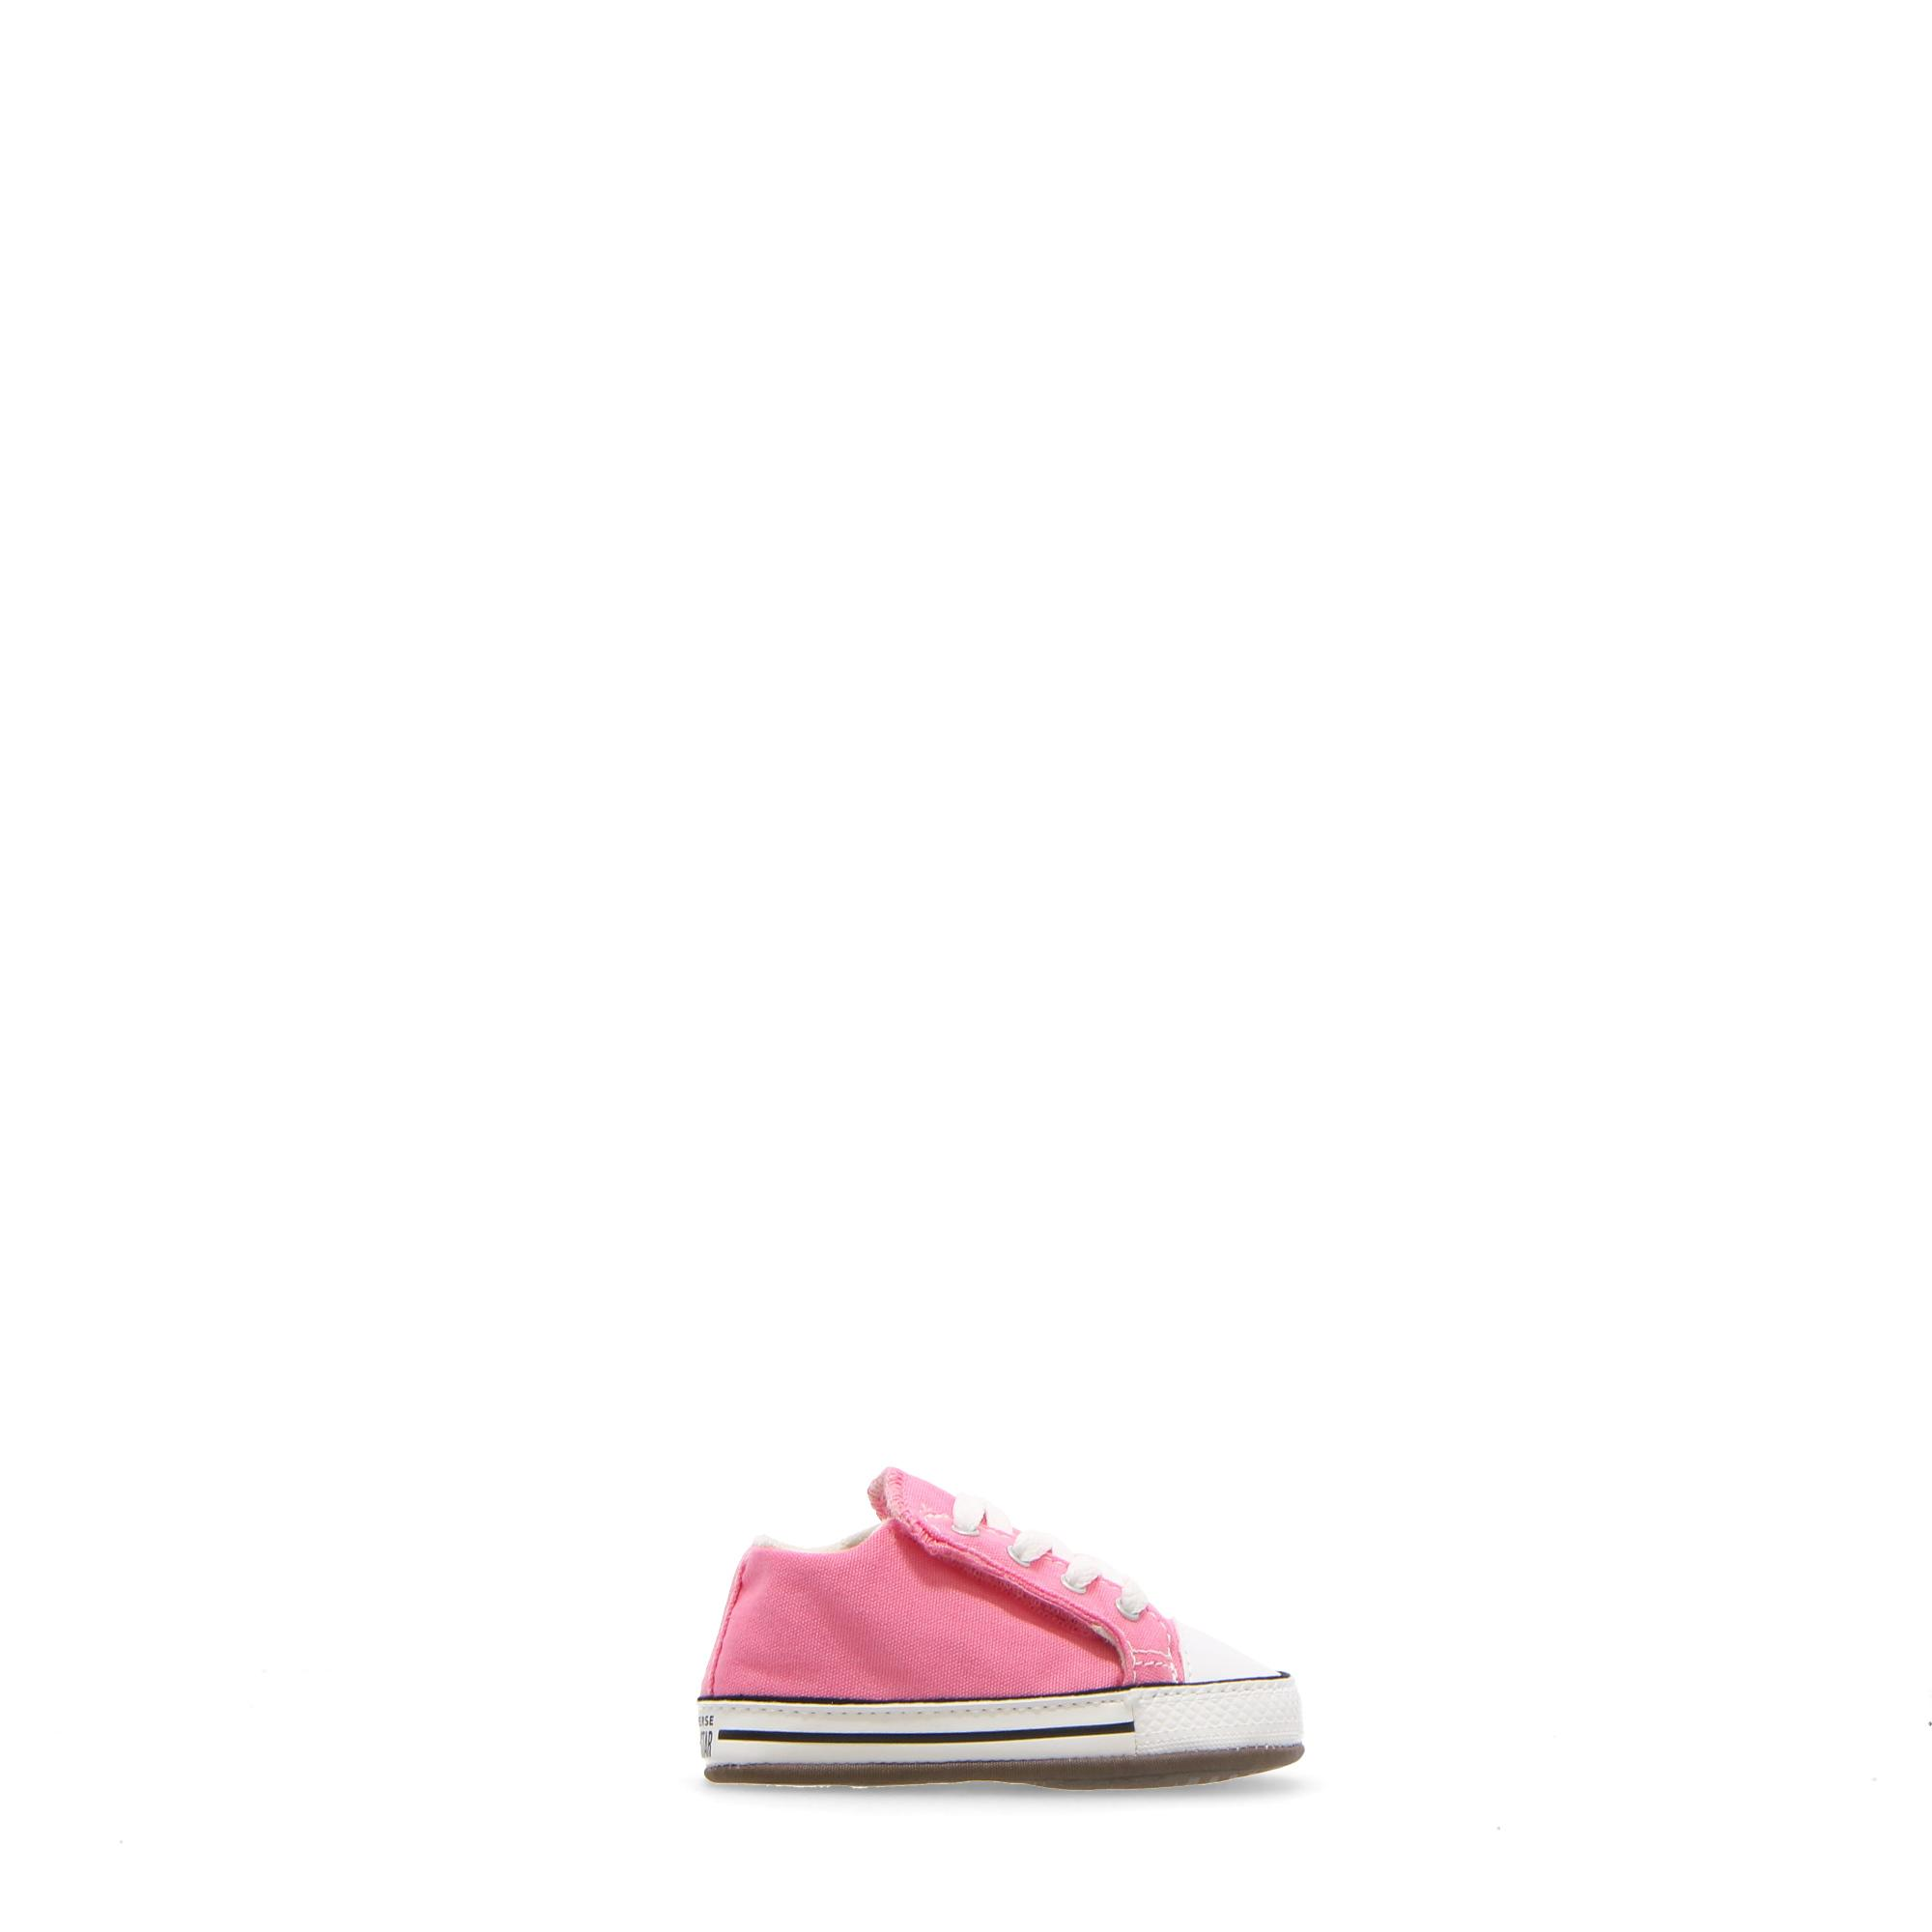 Converse Ct All Star Cribster Pink natural ivory white